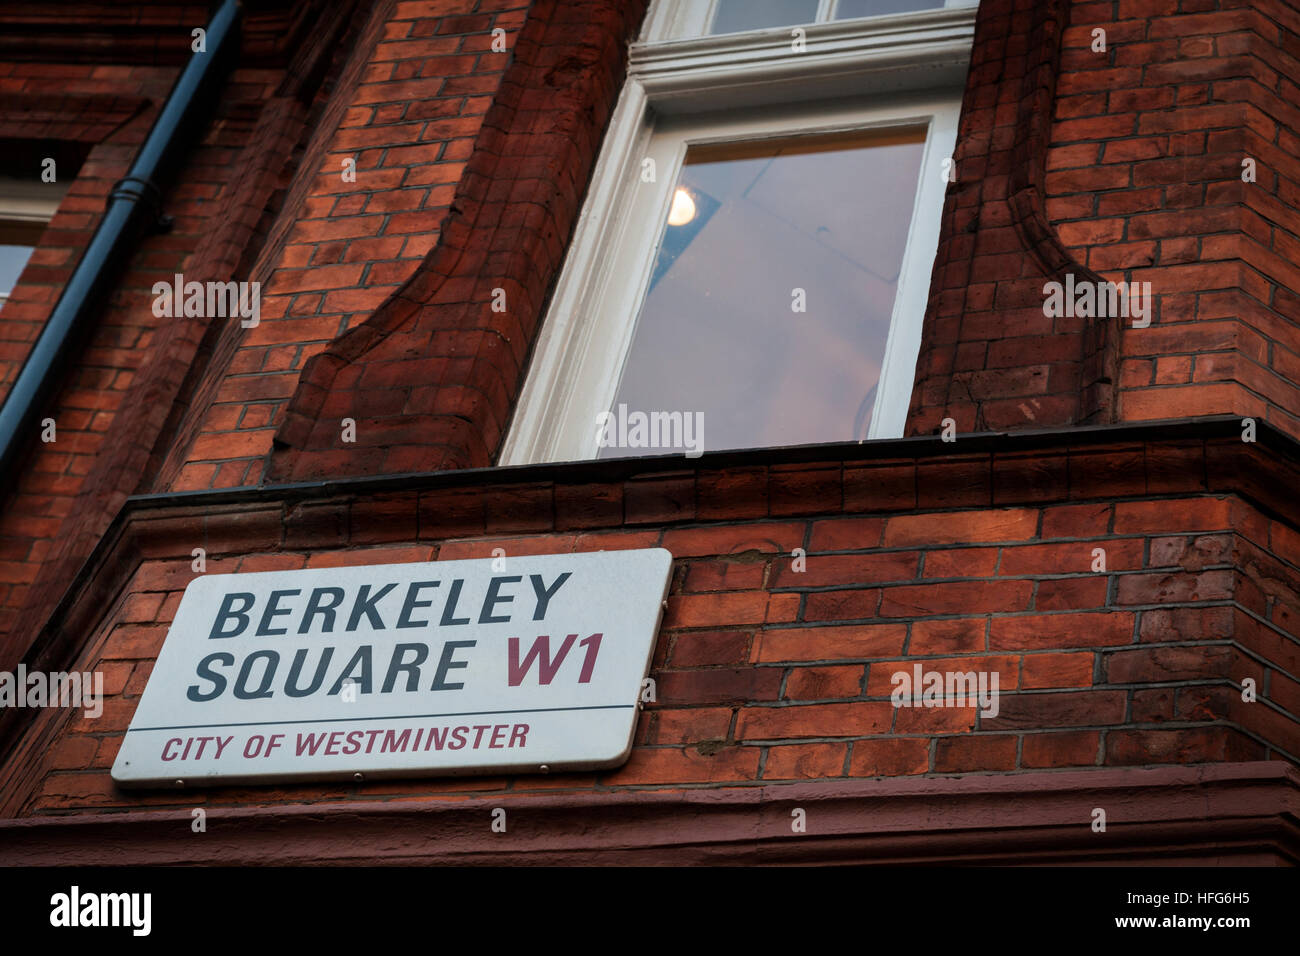 Berkeley Square road sign on the side of red brick building in Mayfair, London - Stock Image